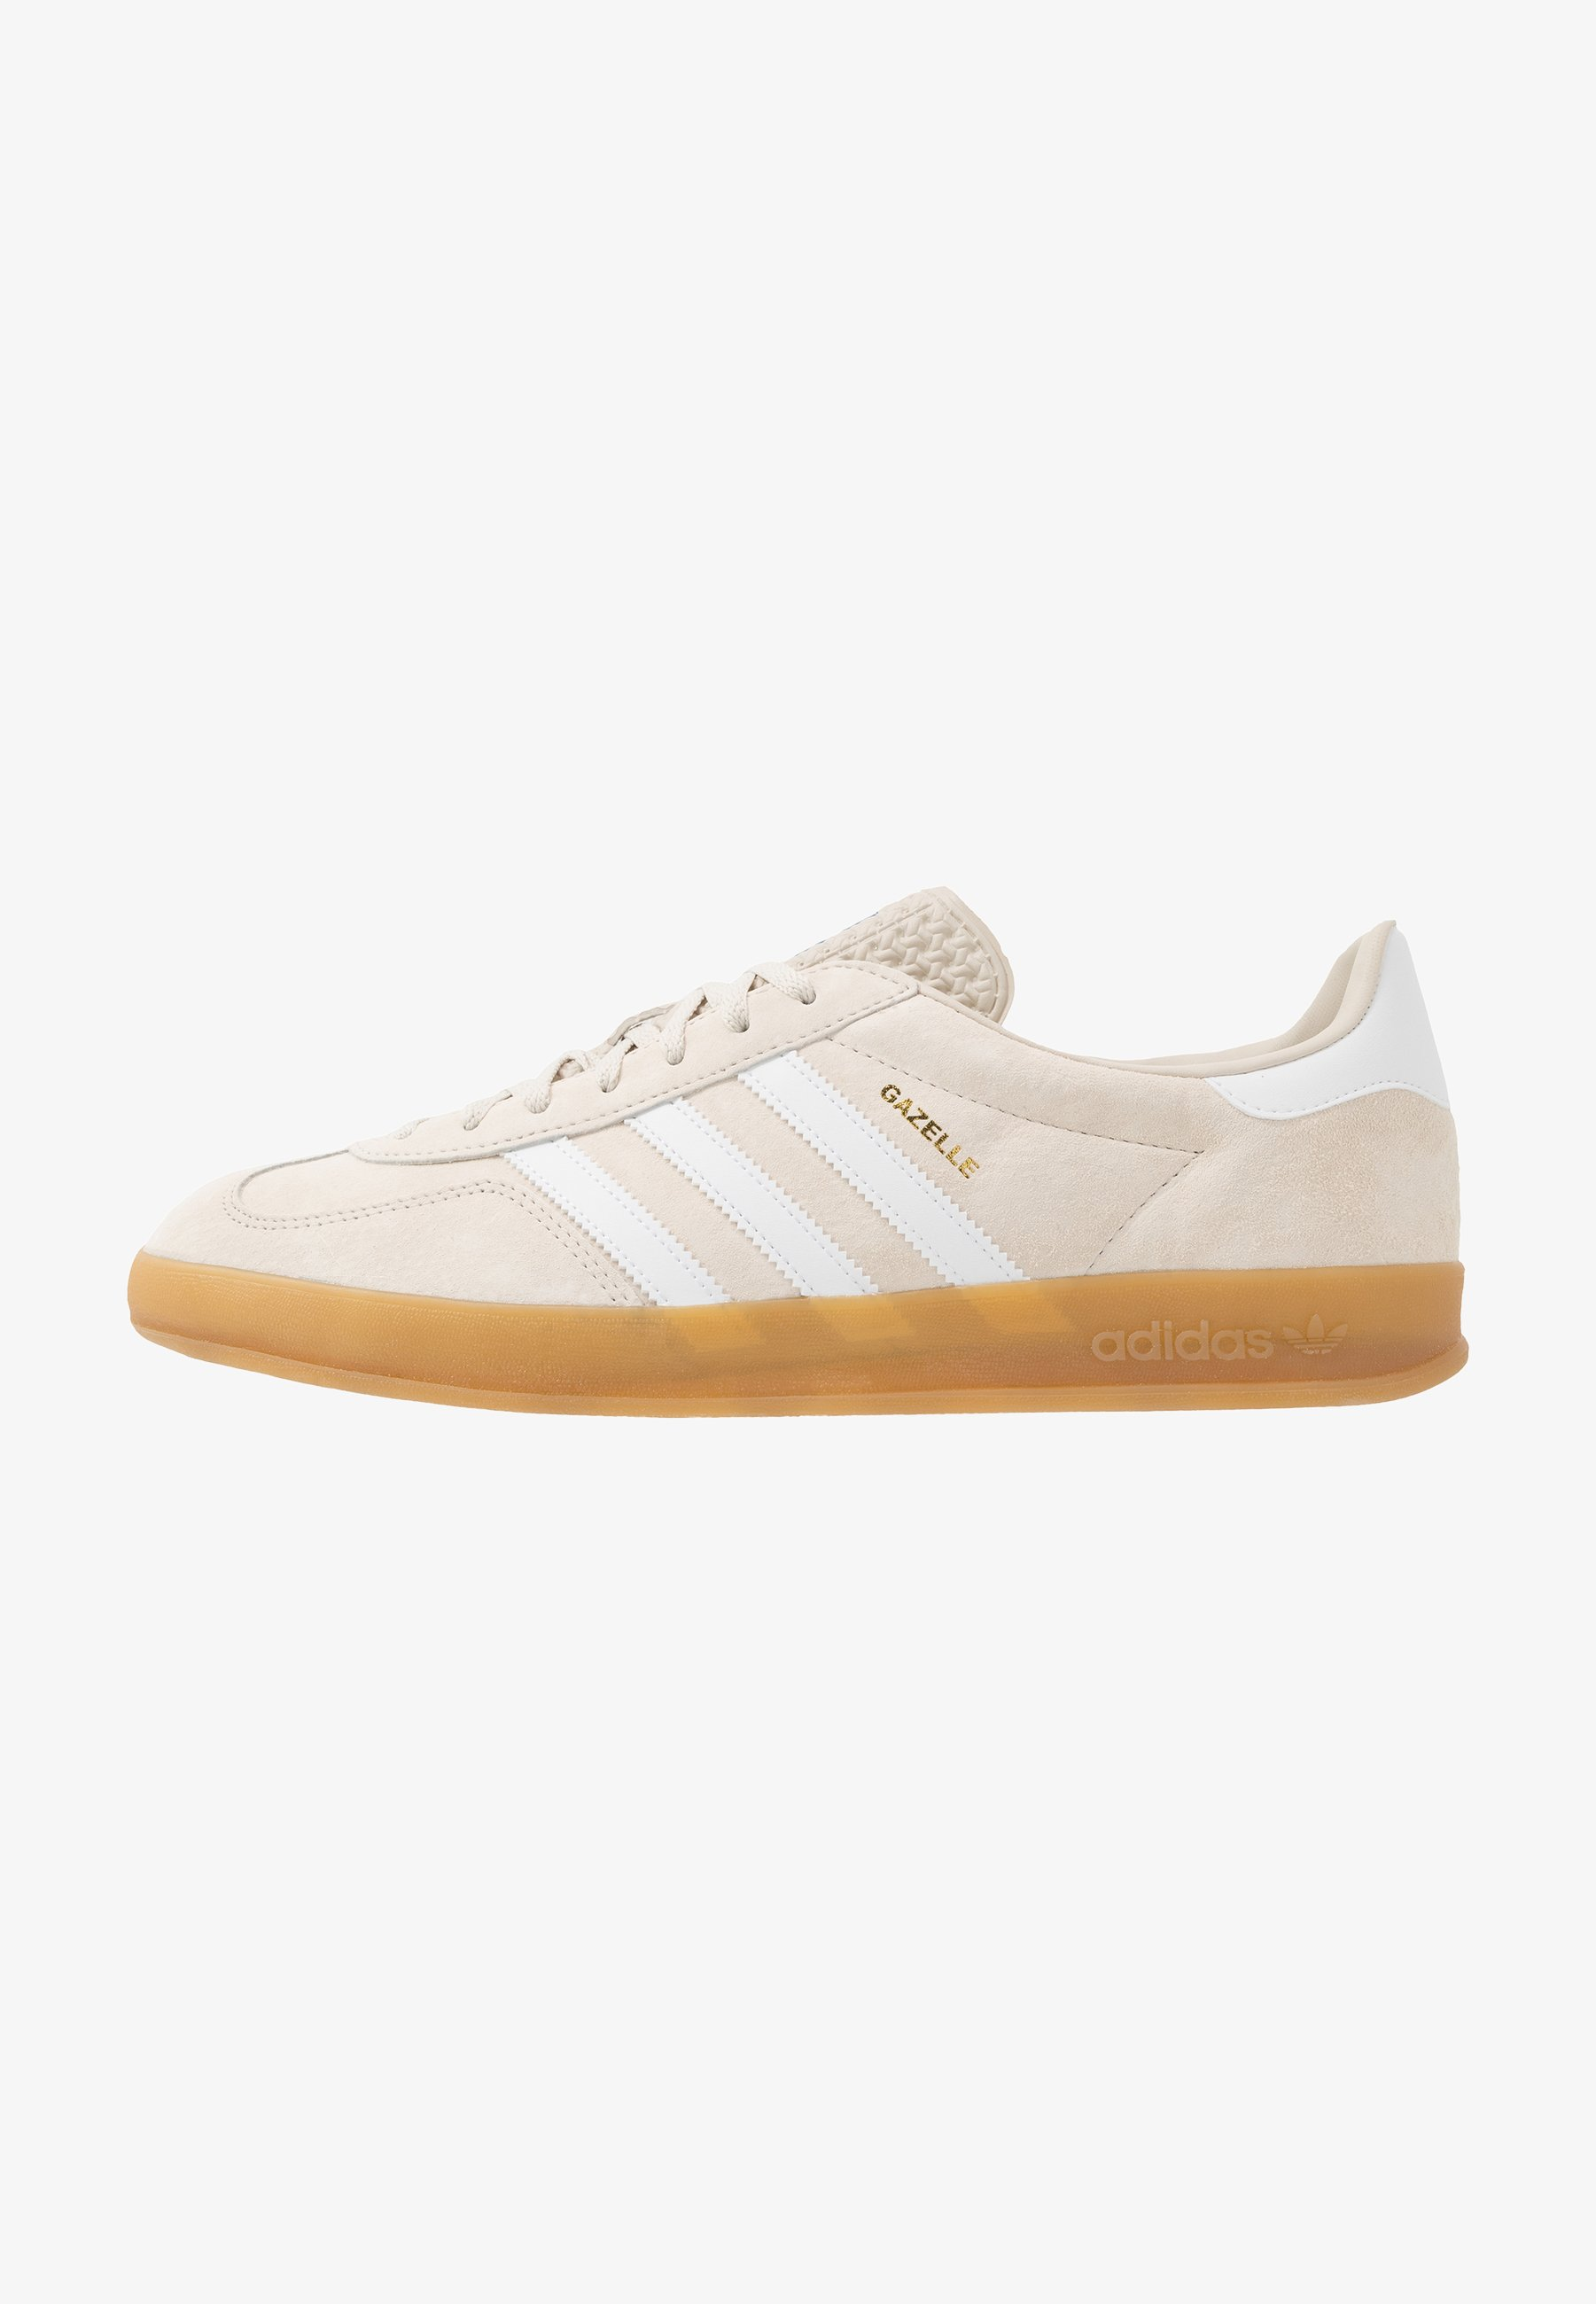 atleta Viaje Enseñando  adidas Originals GAZELLE INDOOR - Trainers - core brown/footwear white -  Zalando.co.uk